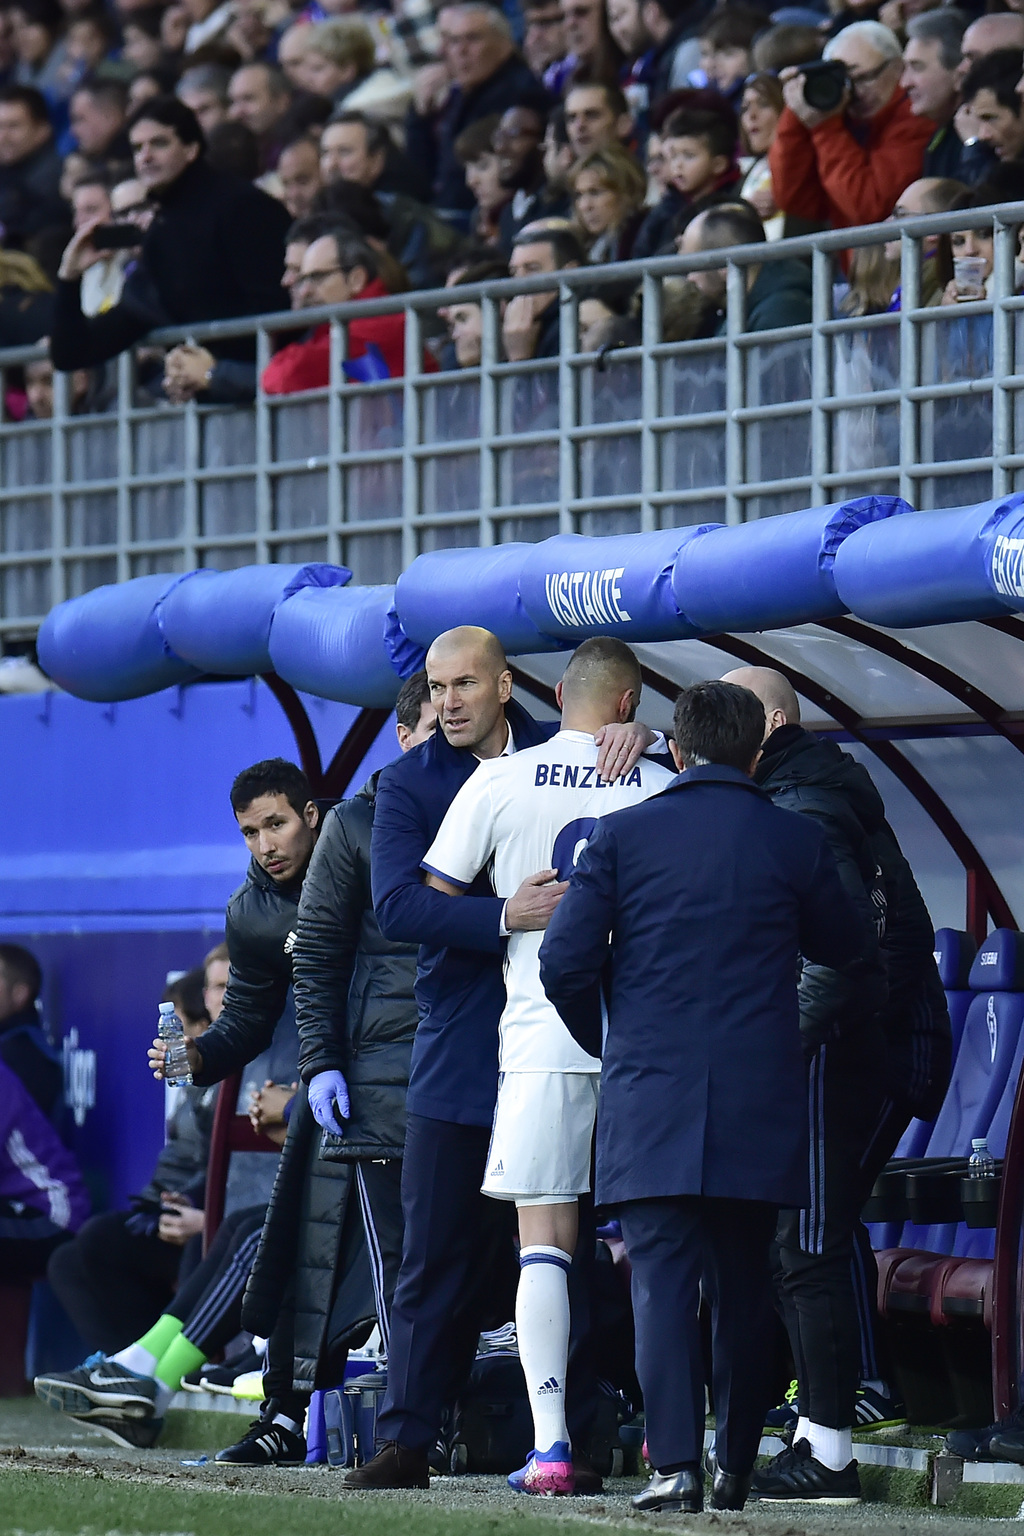 Real Madrid's Karim Benzema, is congratulated by his head coach Zinedine Zidane, after leaving the pitch during the Spanish La Liga soc...